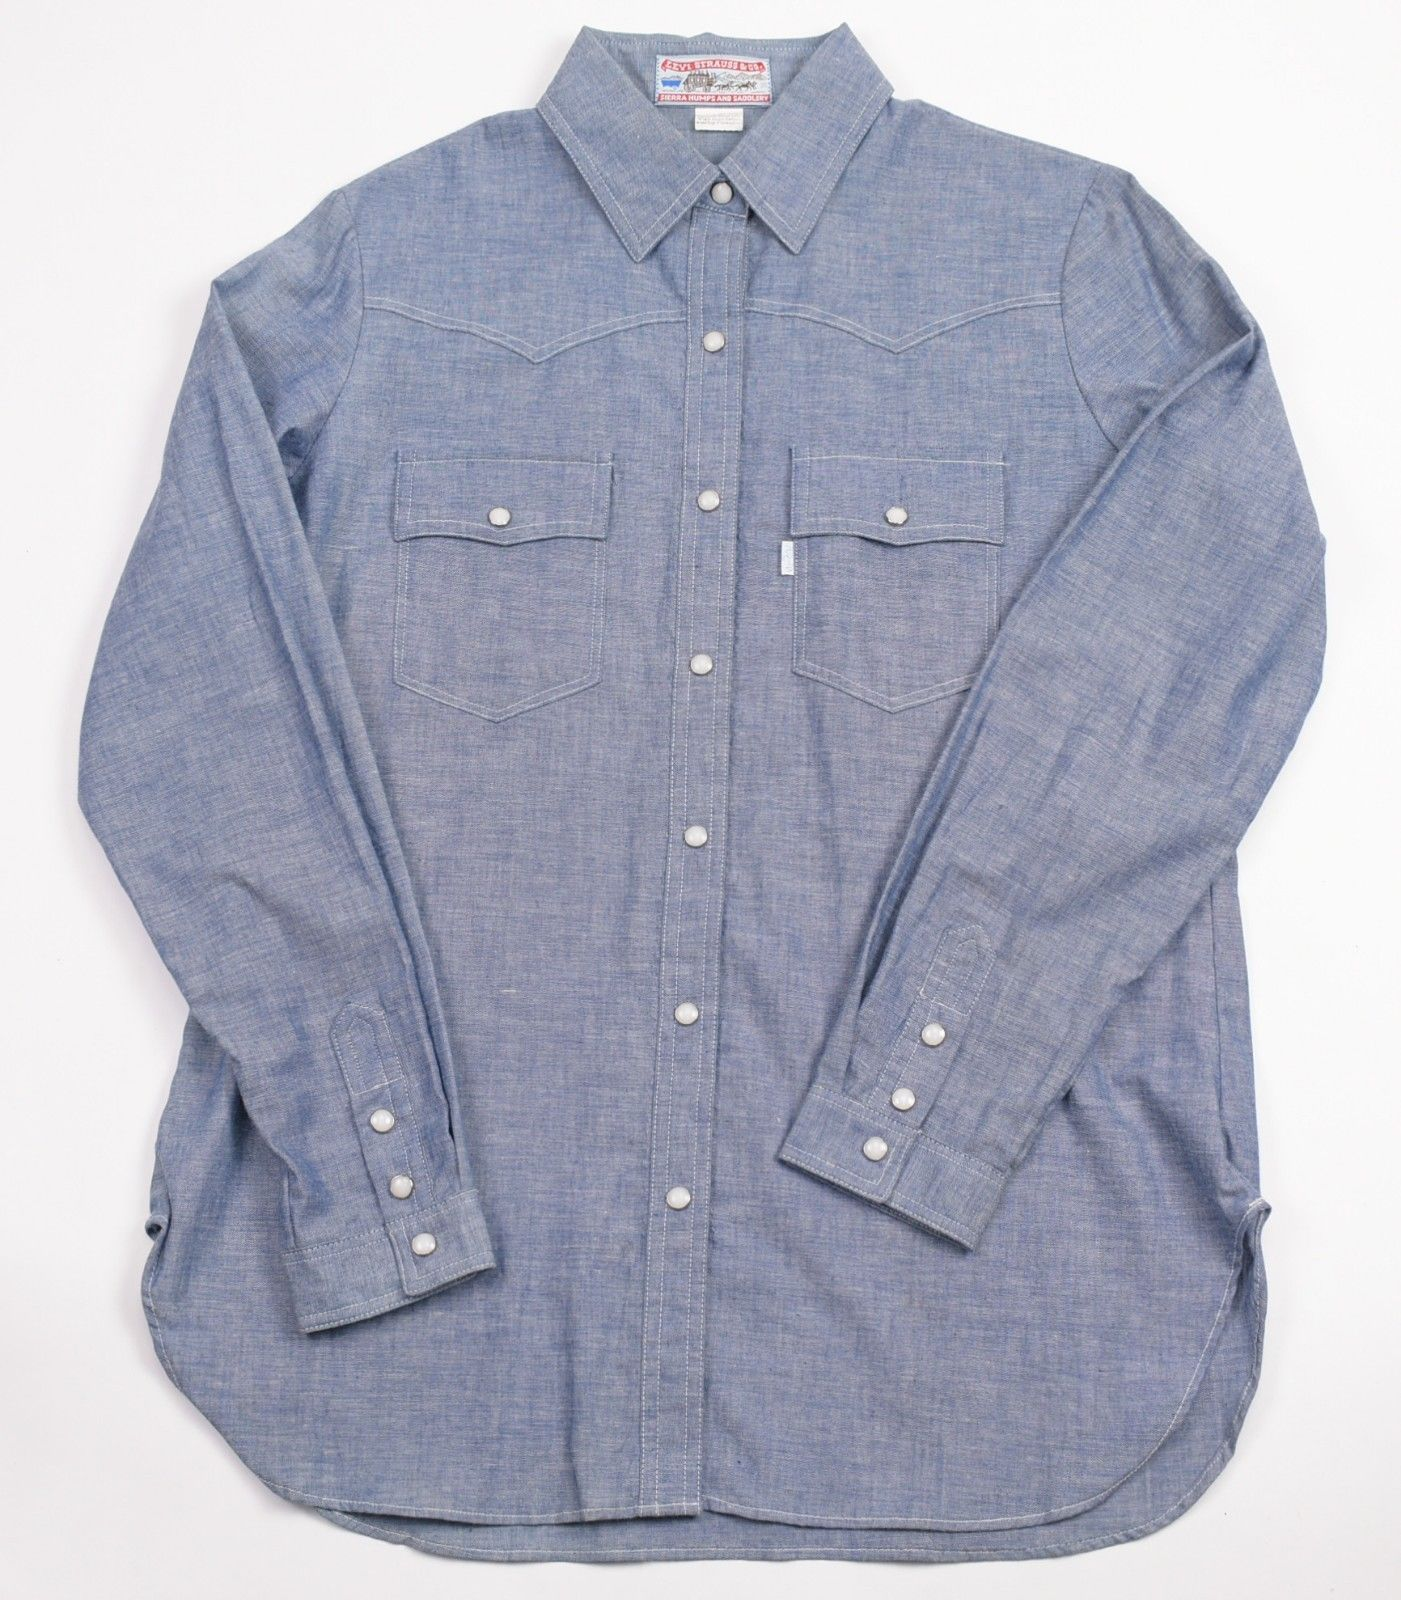 3b1d6cdb6a Vintage Levi s Strauss Co Sierra Saddlery Chambray Denim Pearl Snap Shirt  Large